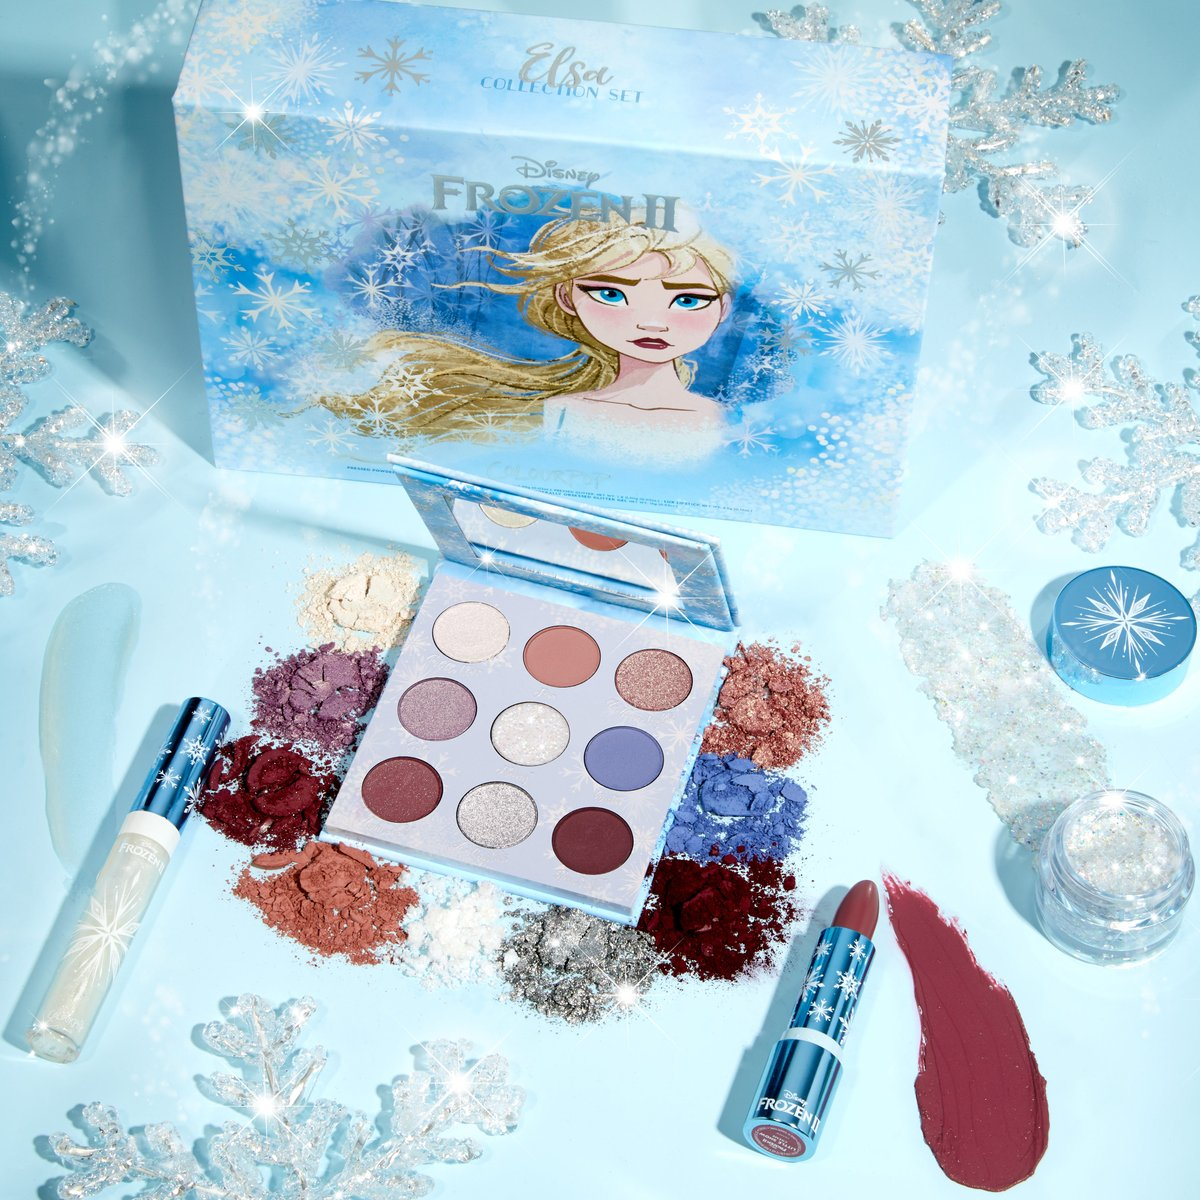 🍂Some collections are worth melting for... now live! ❄️ #frozen2andcolourpop  ☃️: bit.ly/2oOs2F8